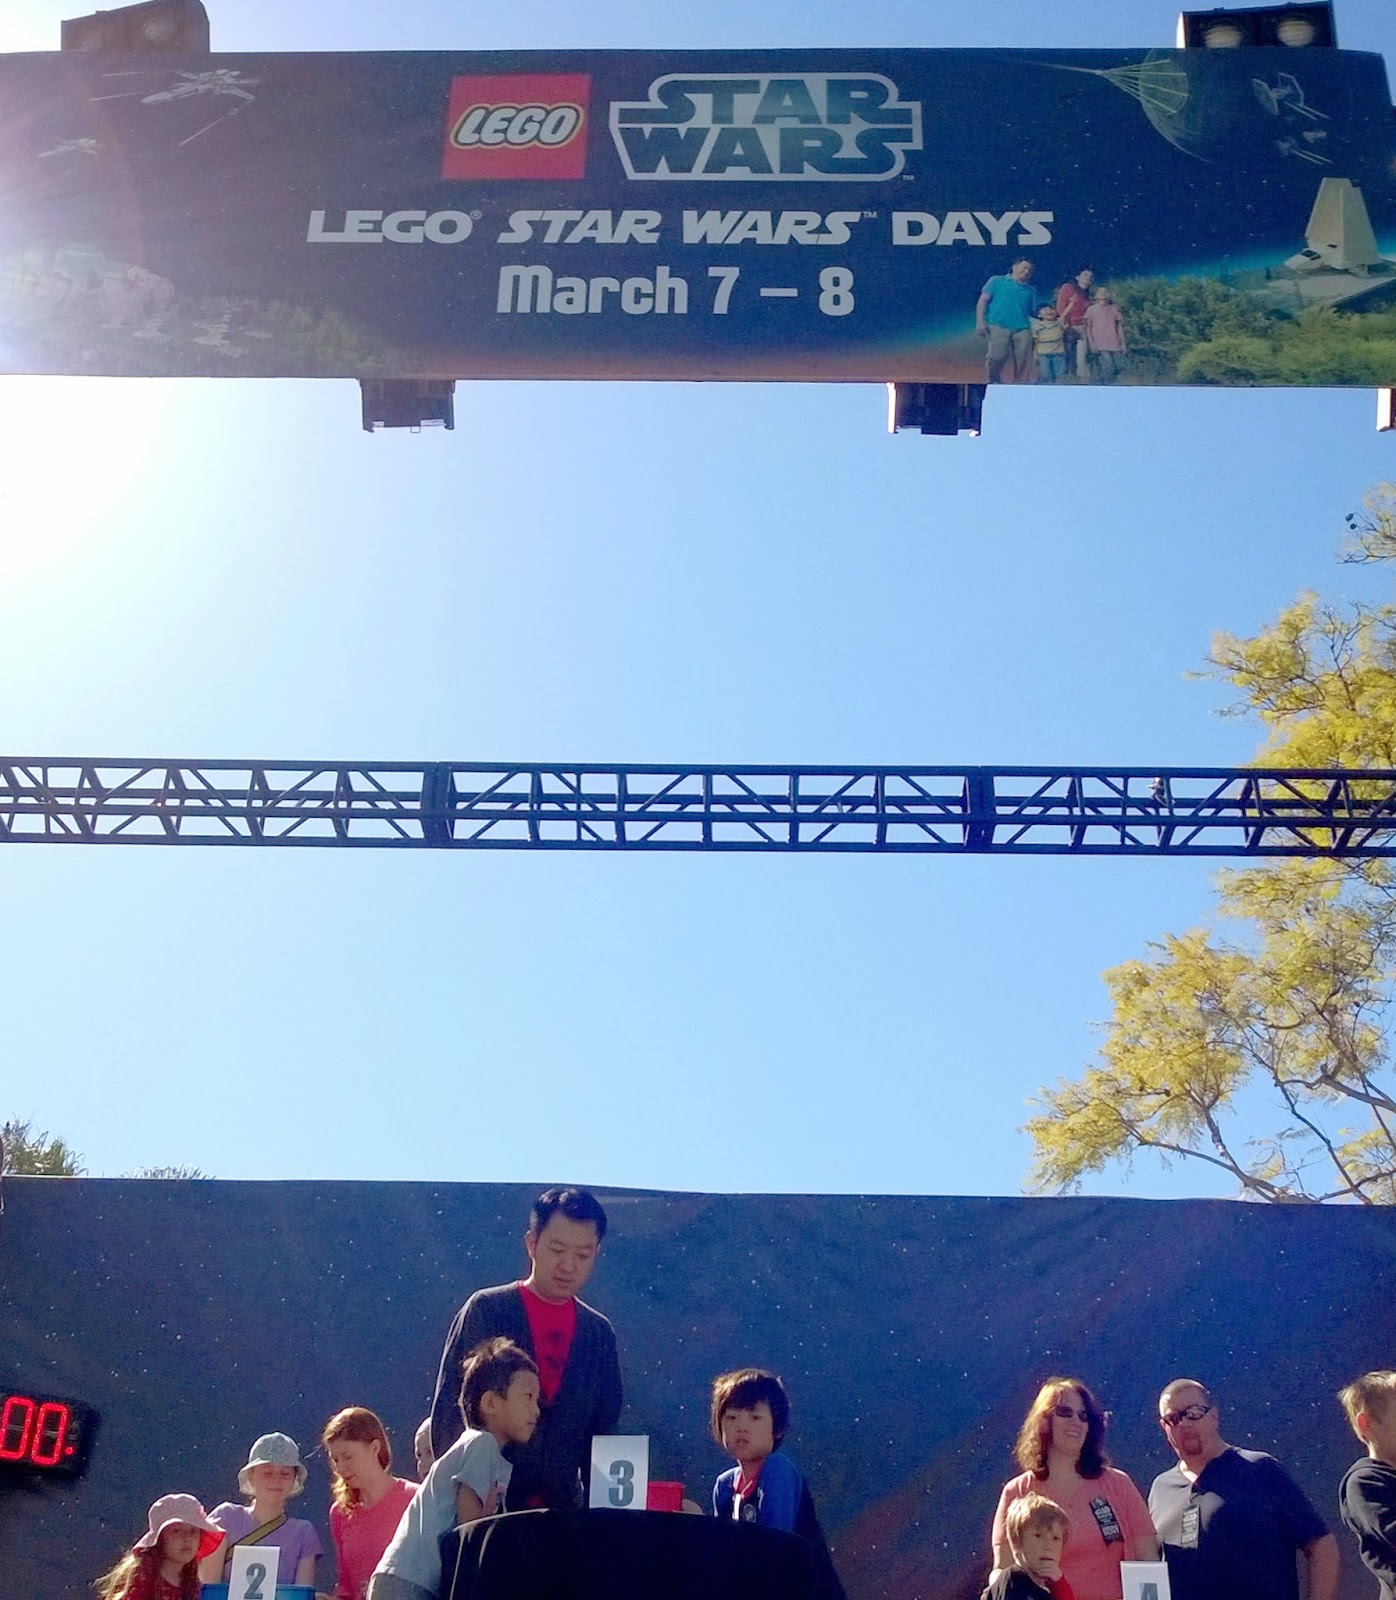 Legoland California Star Wars Days family build challenge